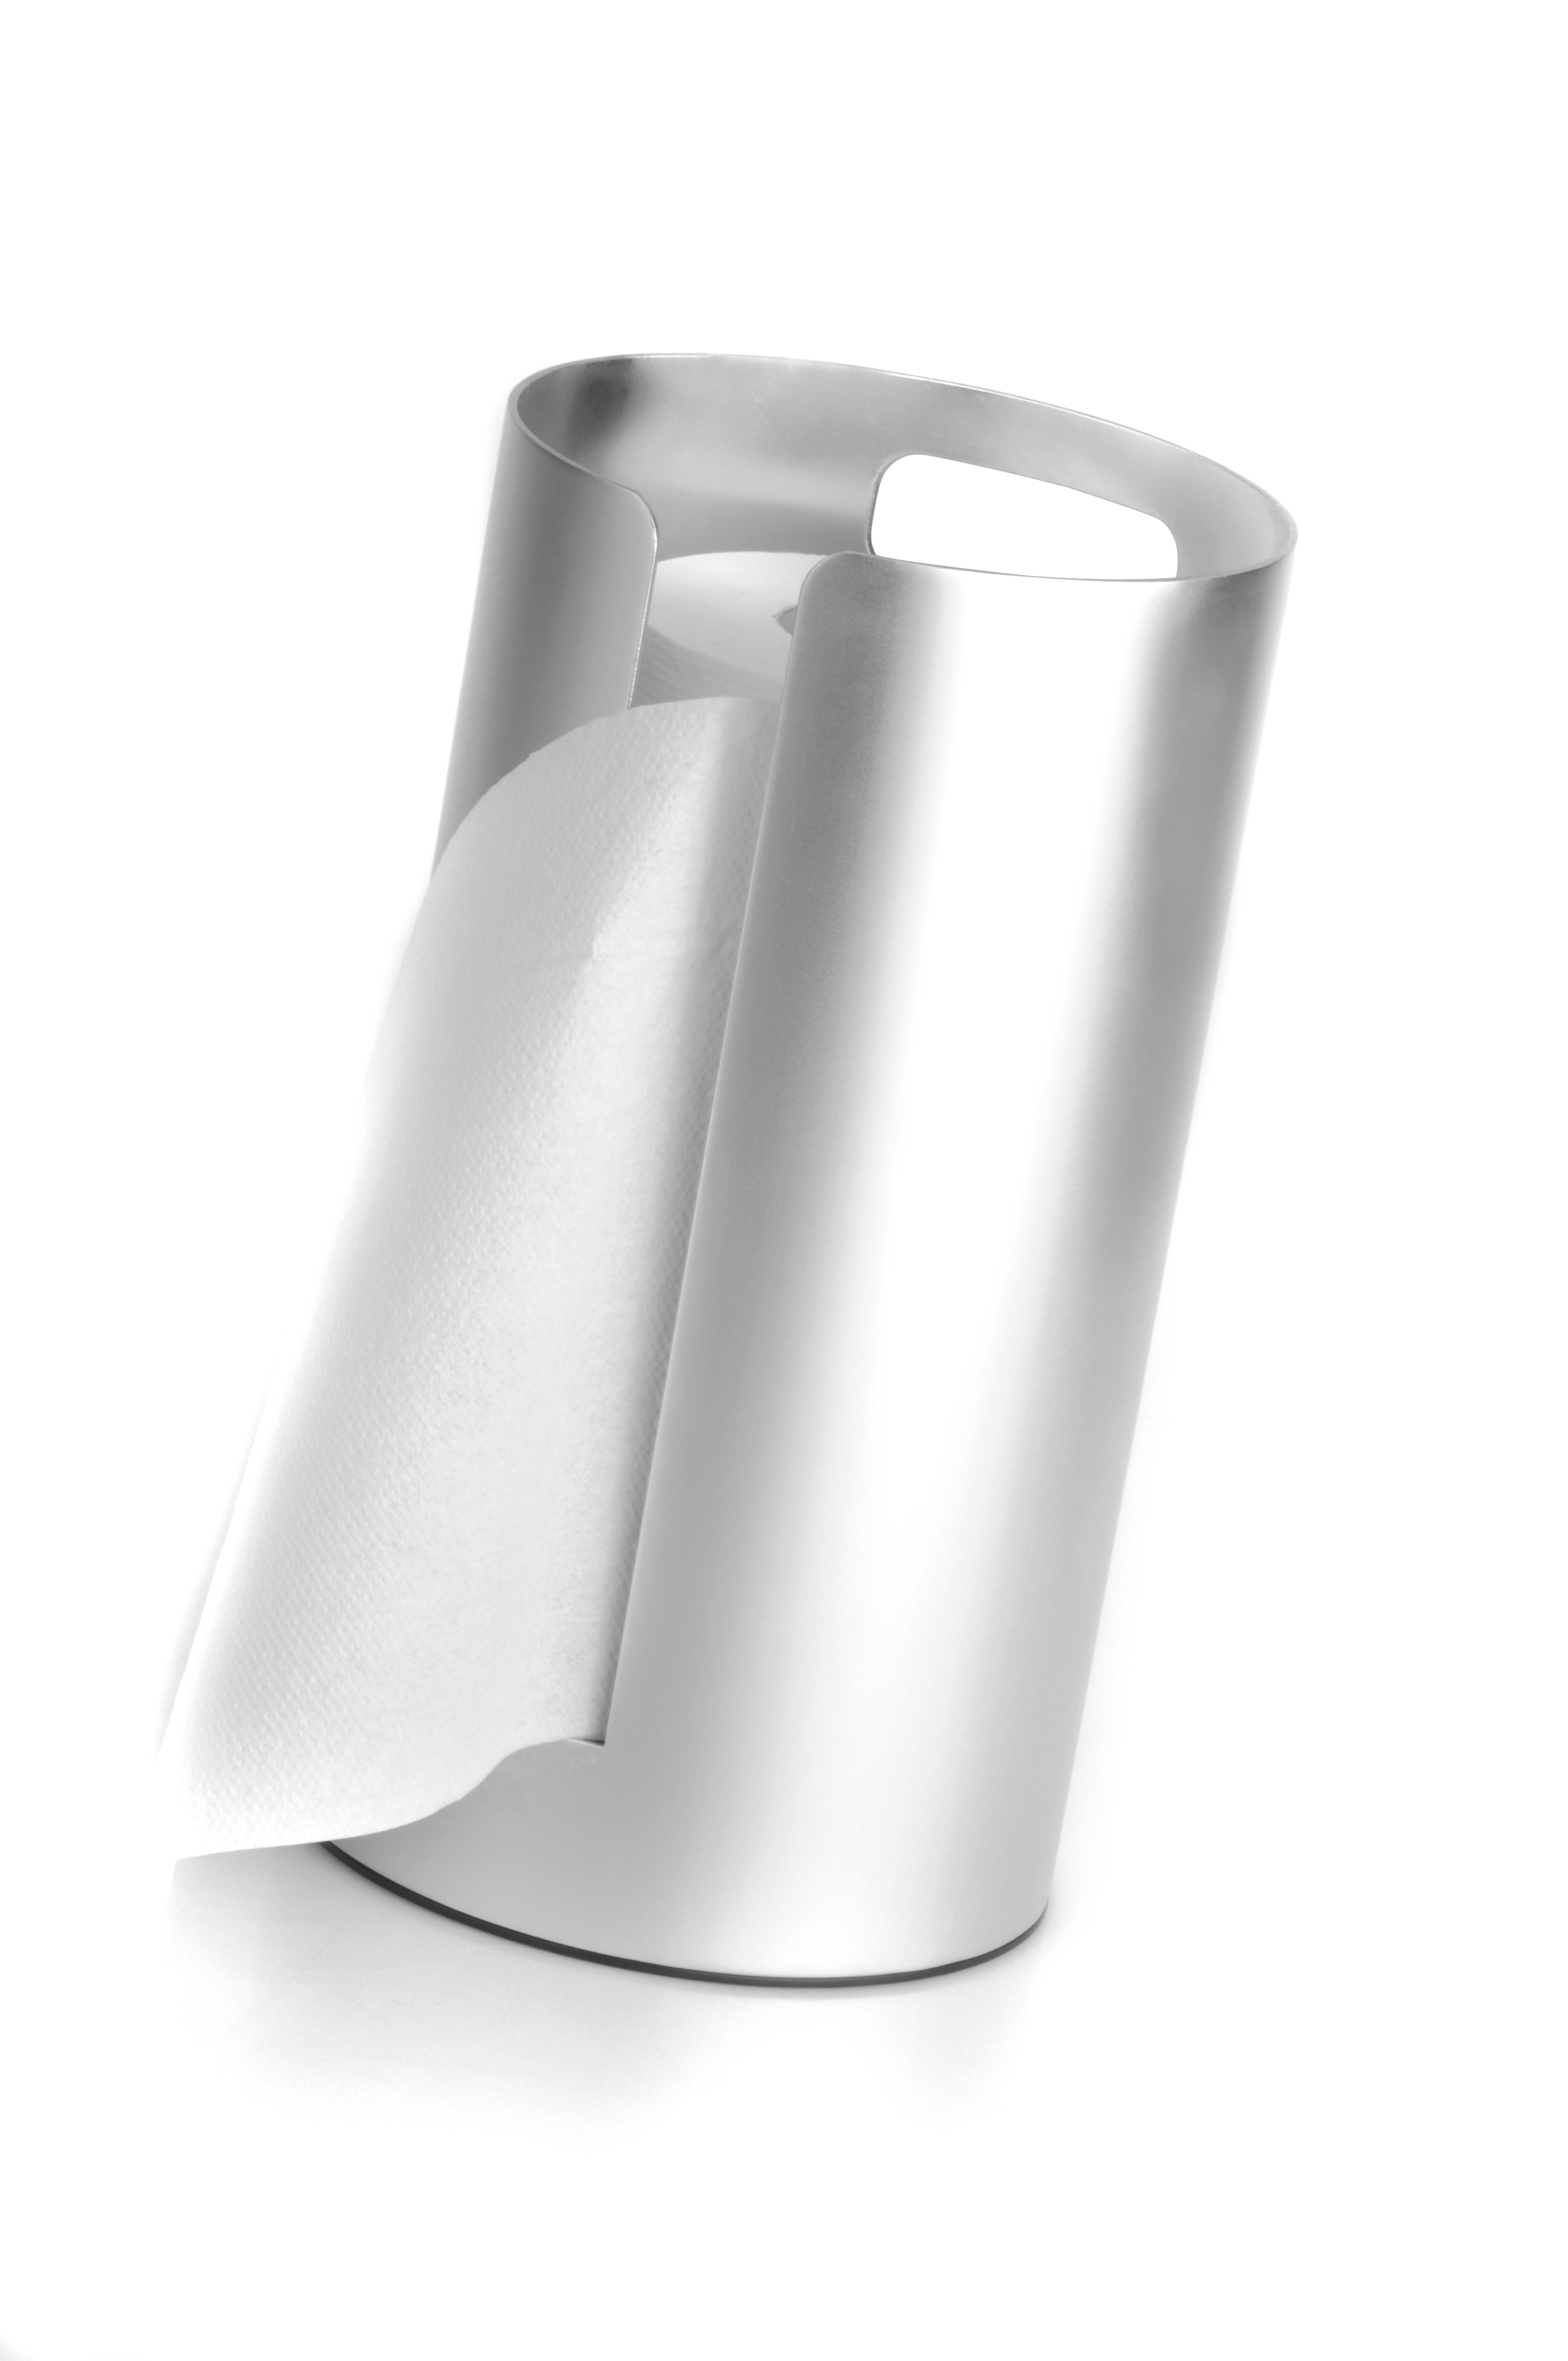 Paper Towel Holder Kmart Berghoff Neo Paper Towel Holder